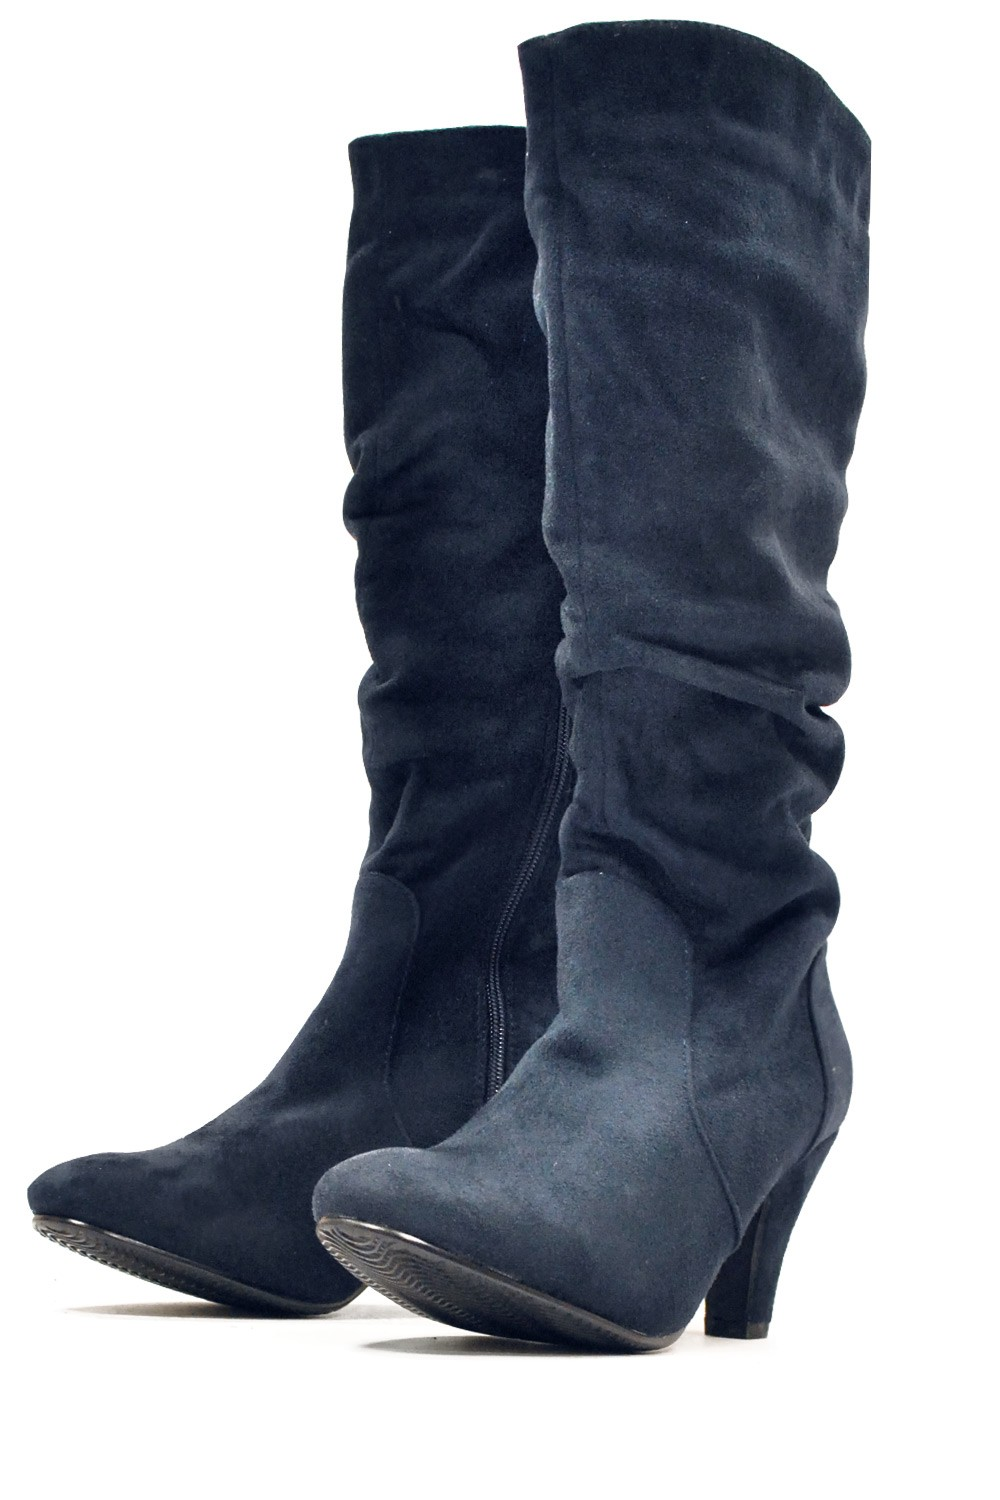 sole city feme knee high boots in navy iclothing